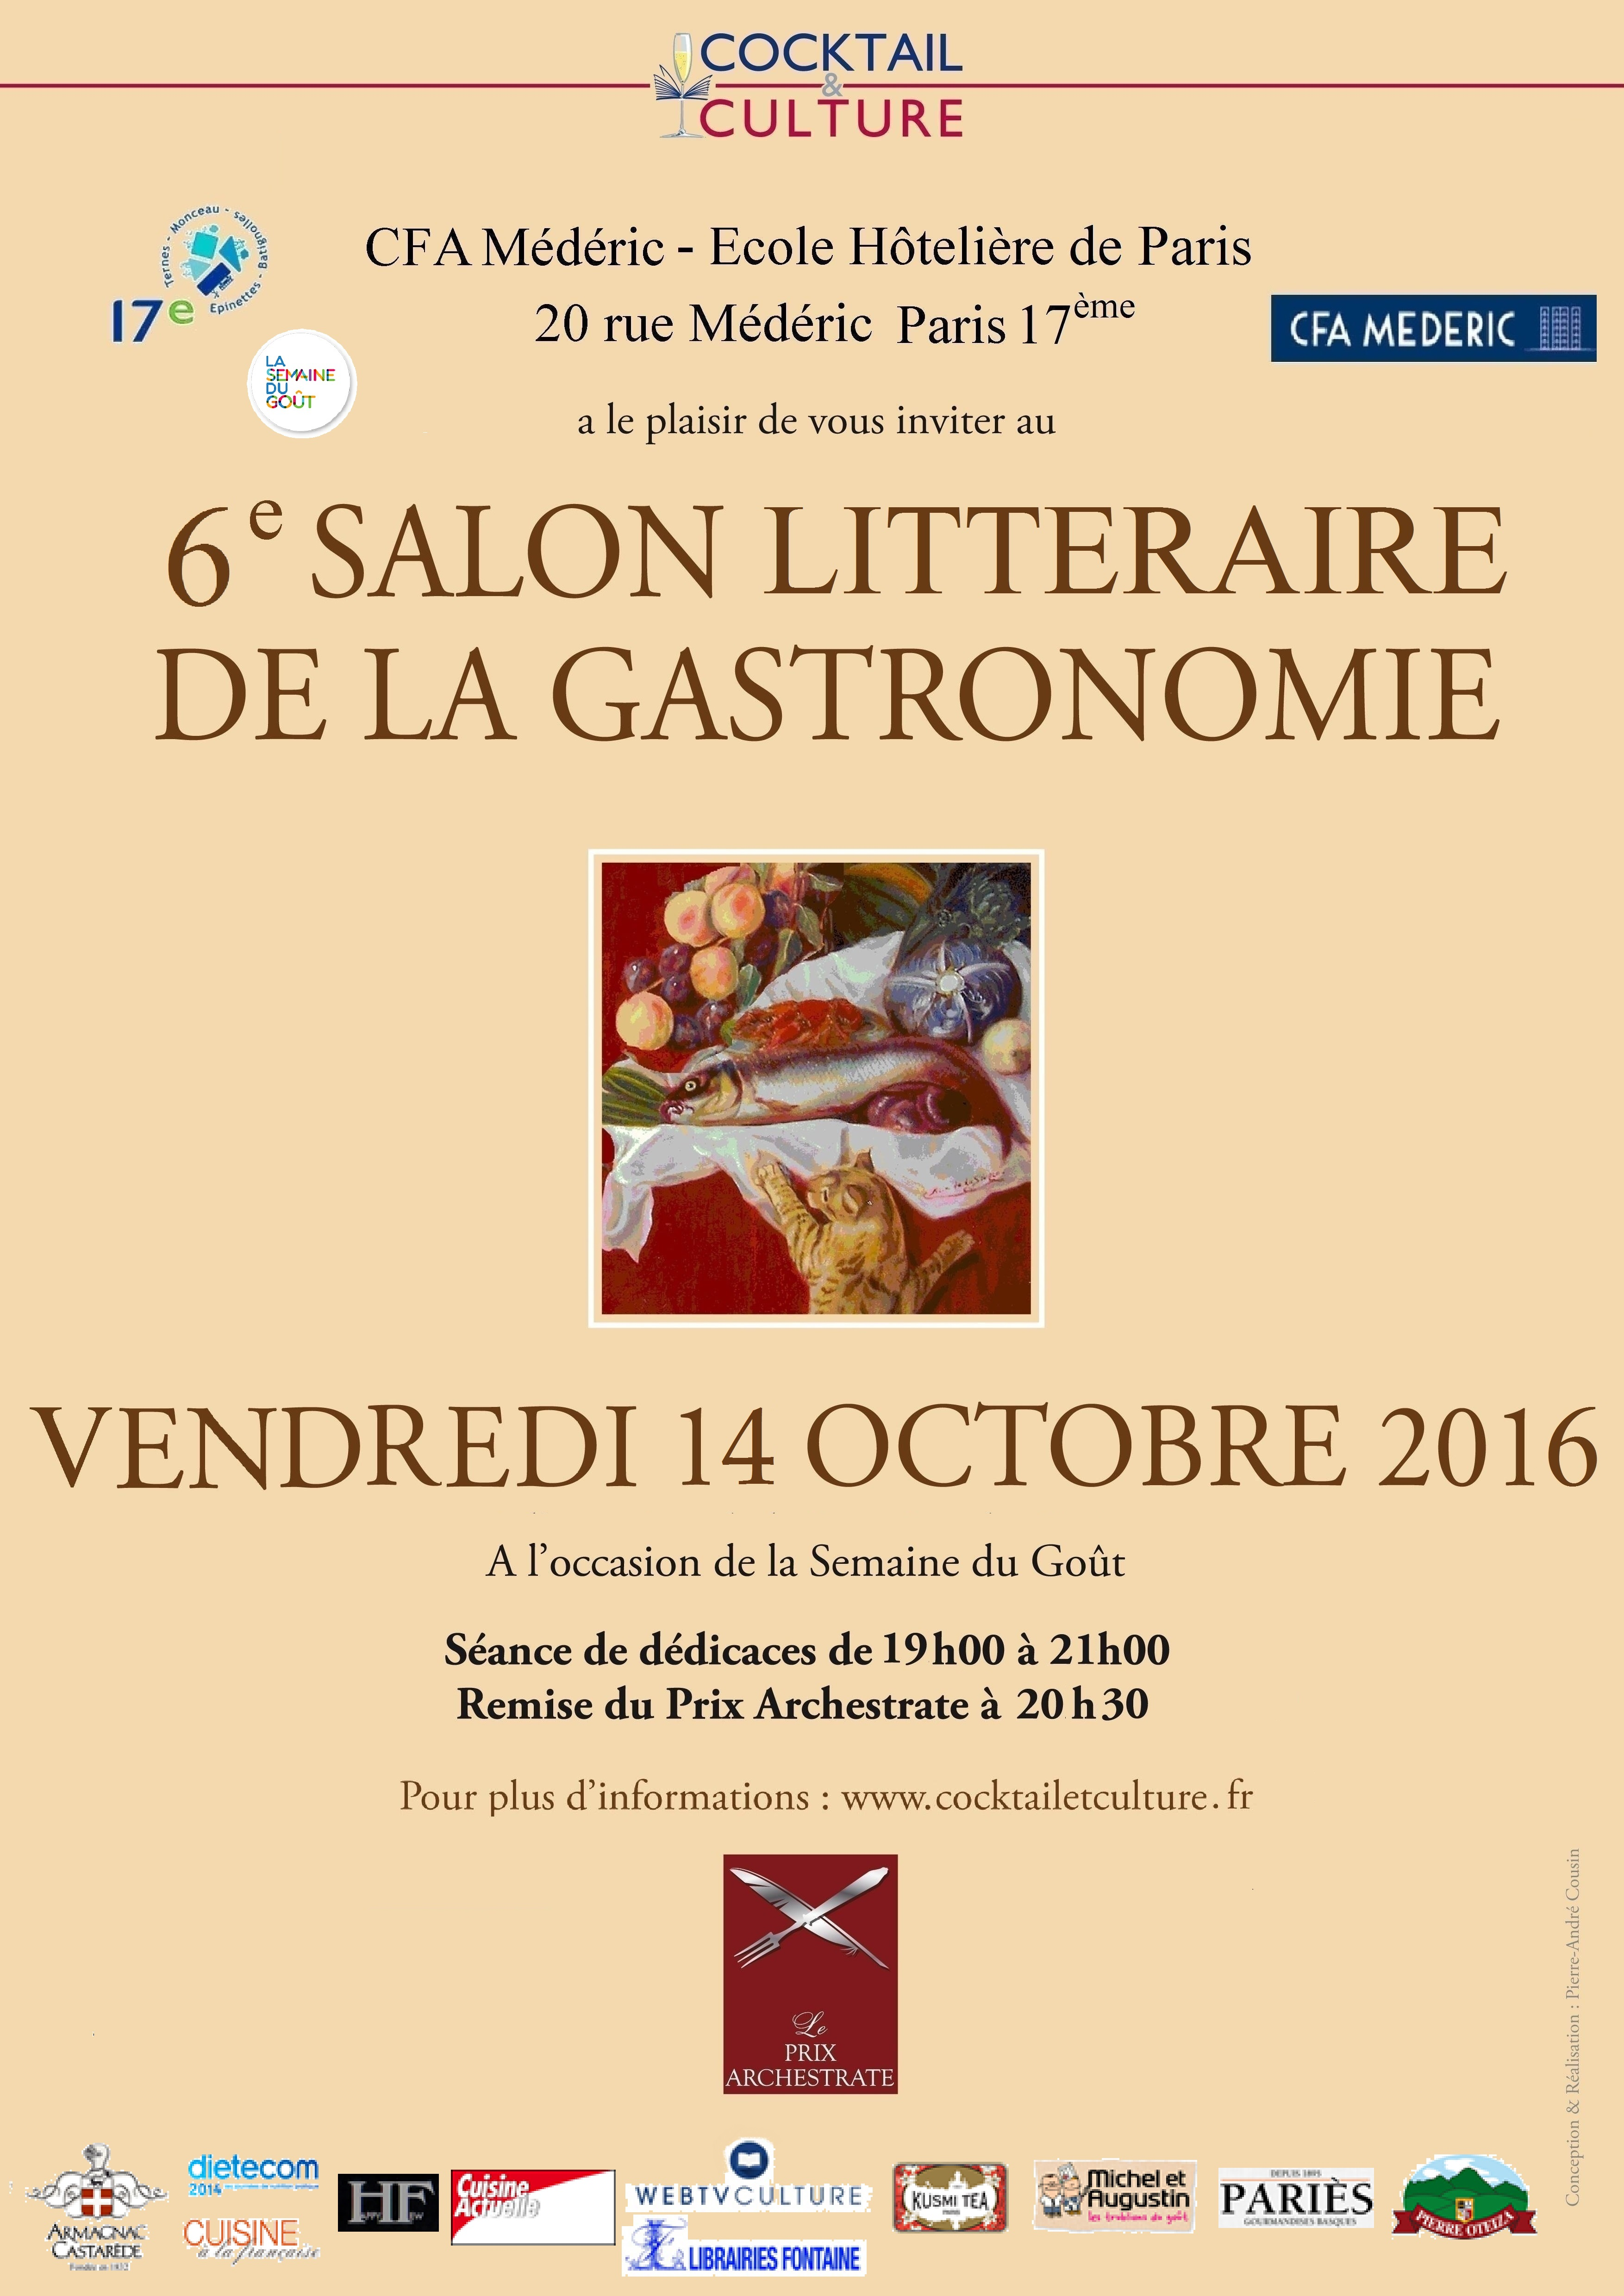 6 me salon litt raire de la gastronomie le vendredi 14 octobre de 19h 21h au cfa m d ric. Black Bedroom Furniture Sets. Home Design Ideas